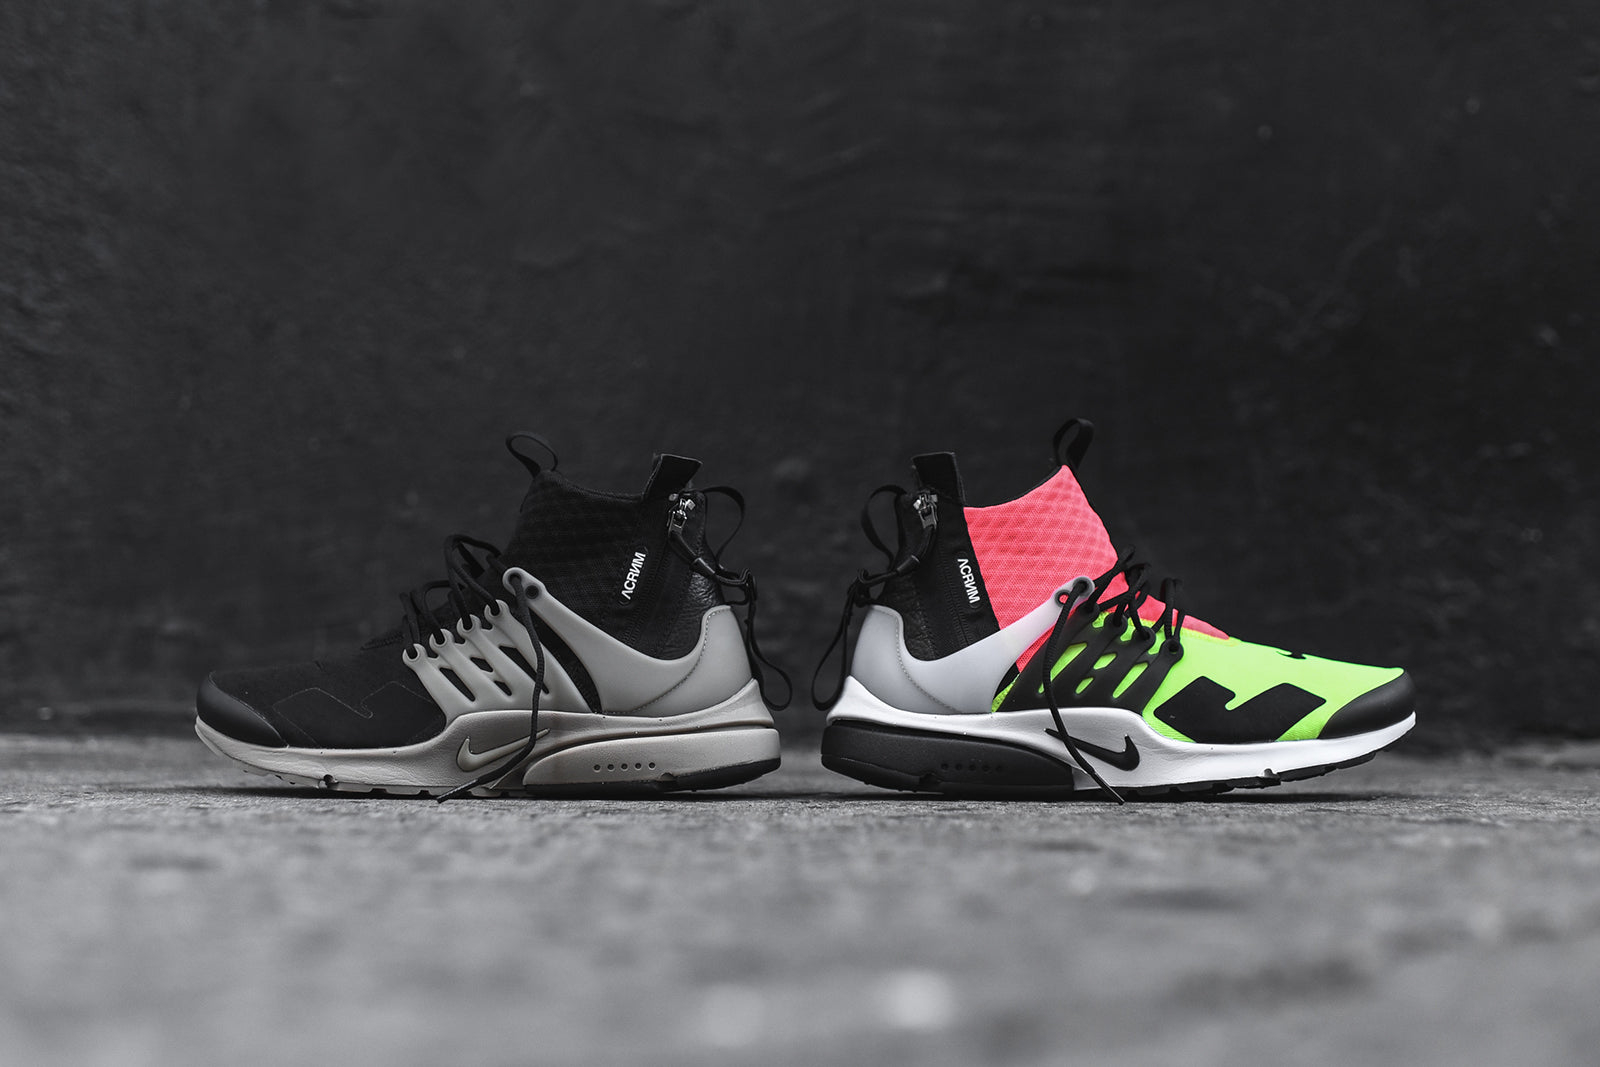 timeless design b9194 d8701 Nike x Acronym Air Presto Mid Pack – Kith